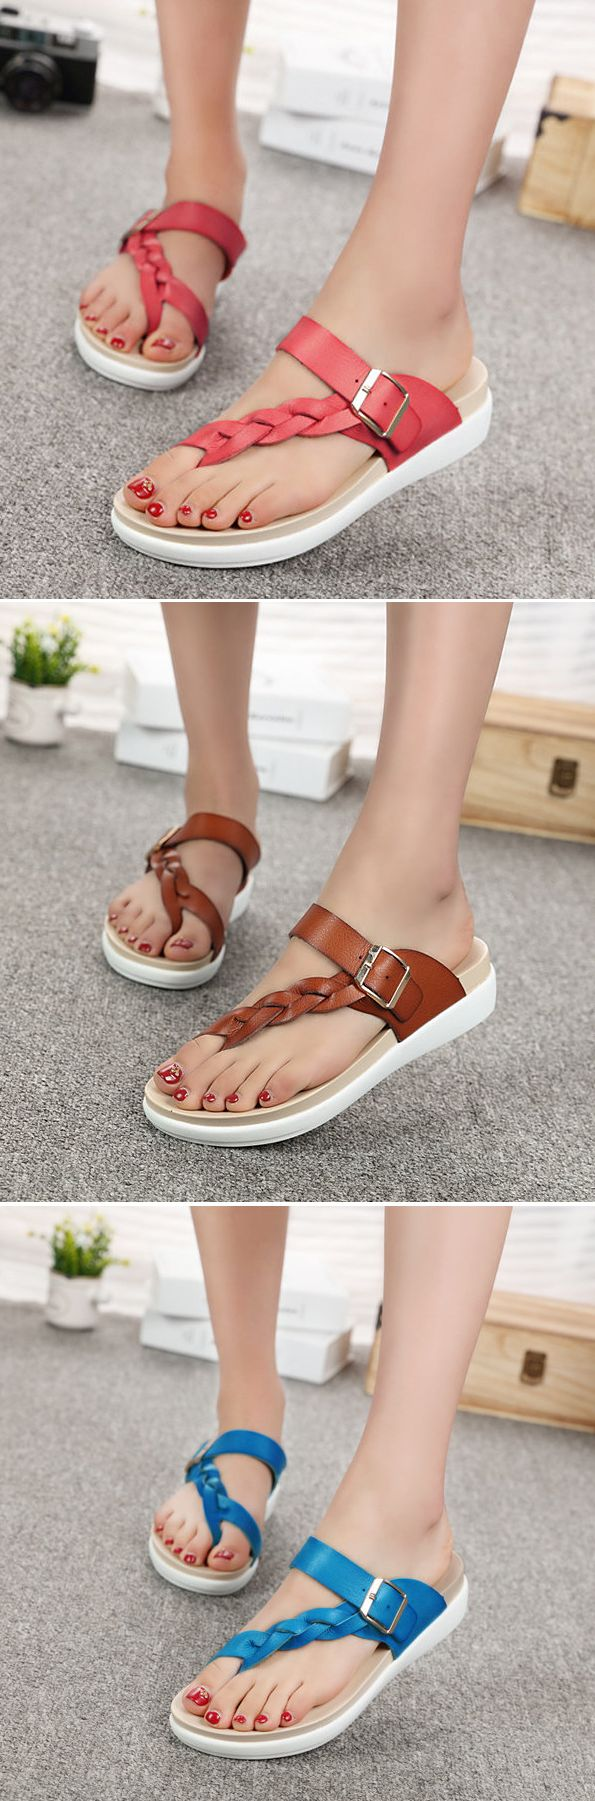 US$19.72 Leather Knitting Weave Buckle Clip Toe Flat_ Open Heel Flip Flops Sandals_Beach Sandals For Summer